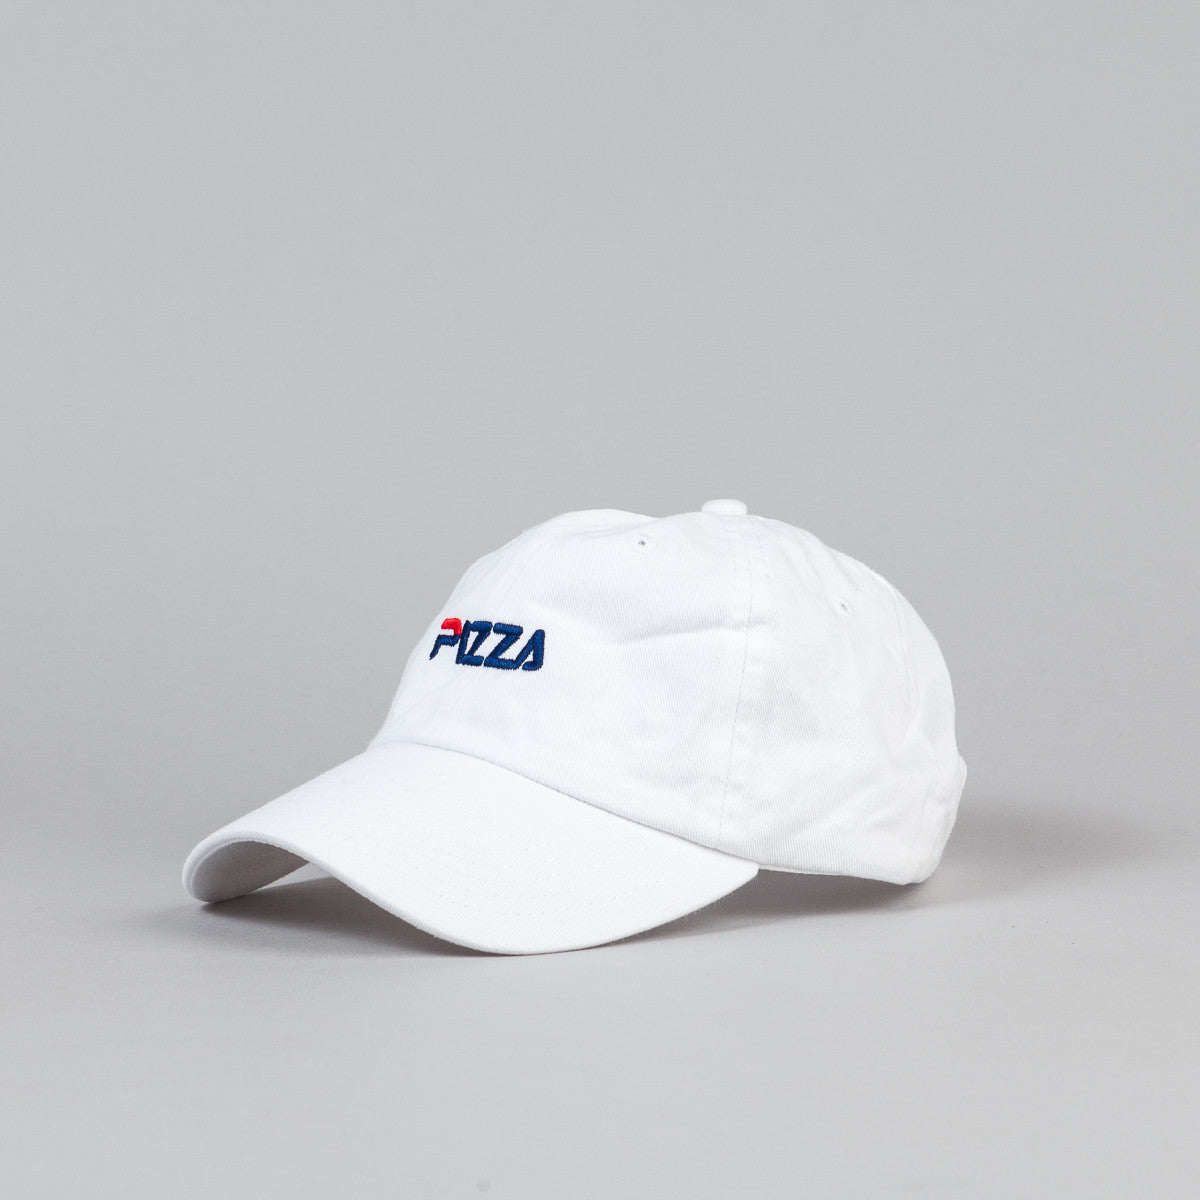 Pizza Skateboards Fizza Delivery Boy Cap